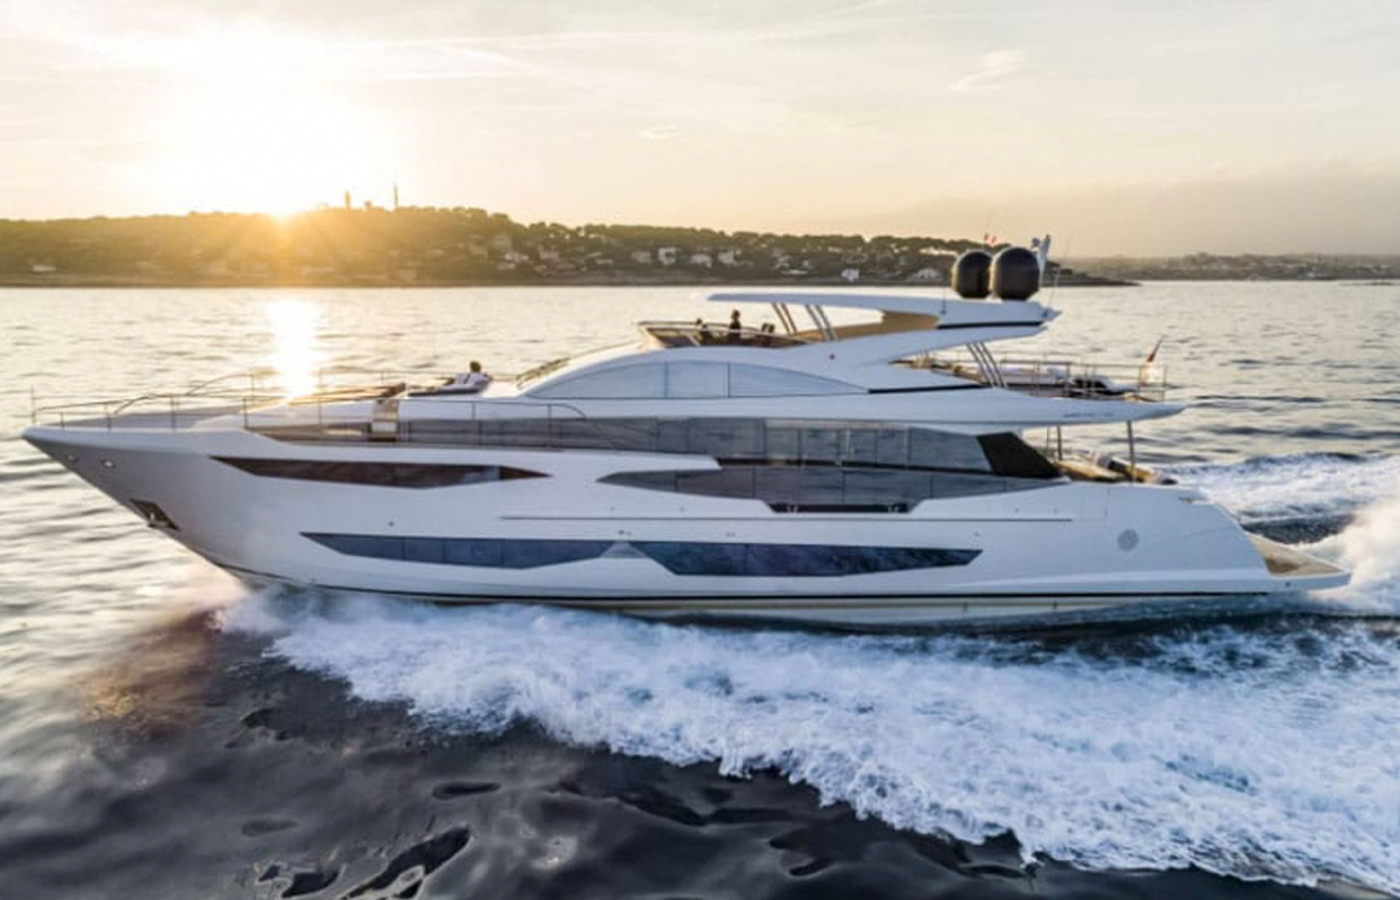 95′ Pearl Yacht Highlight [Boat Review + Video]